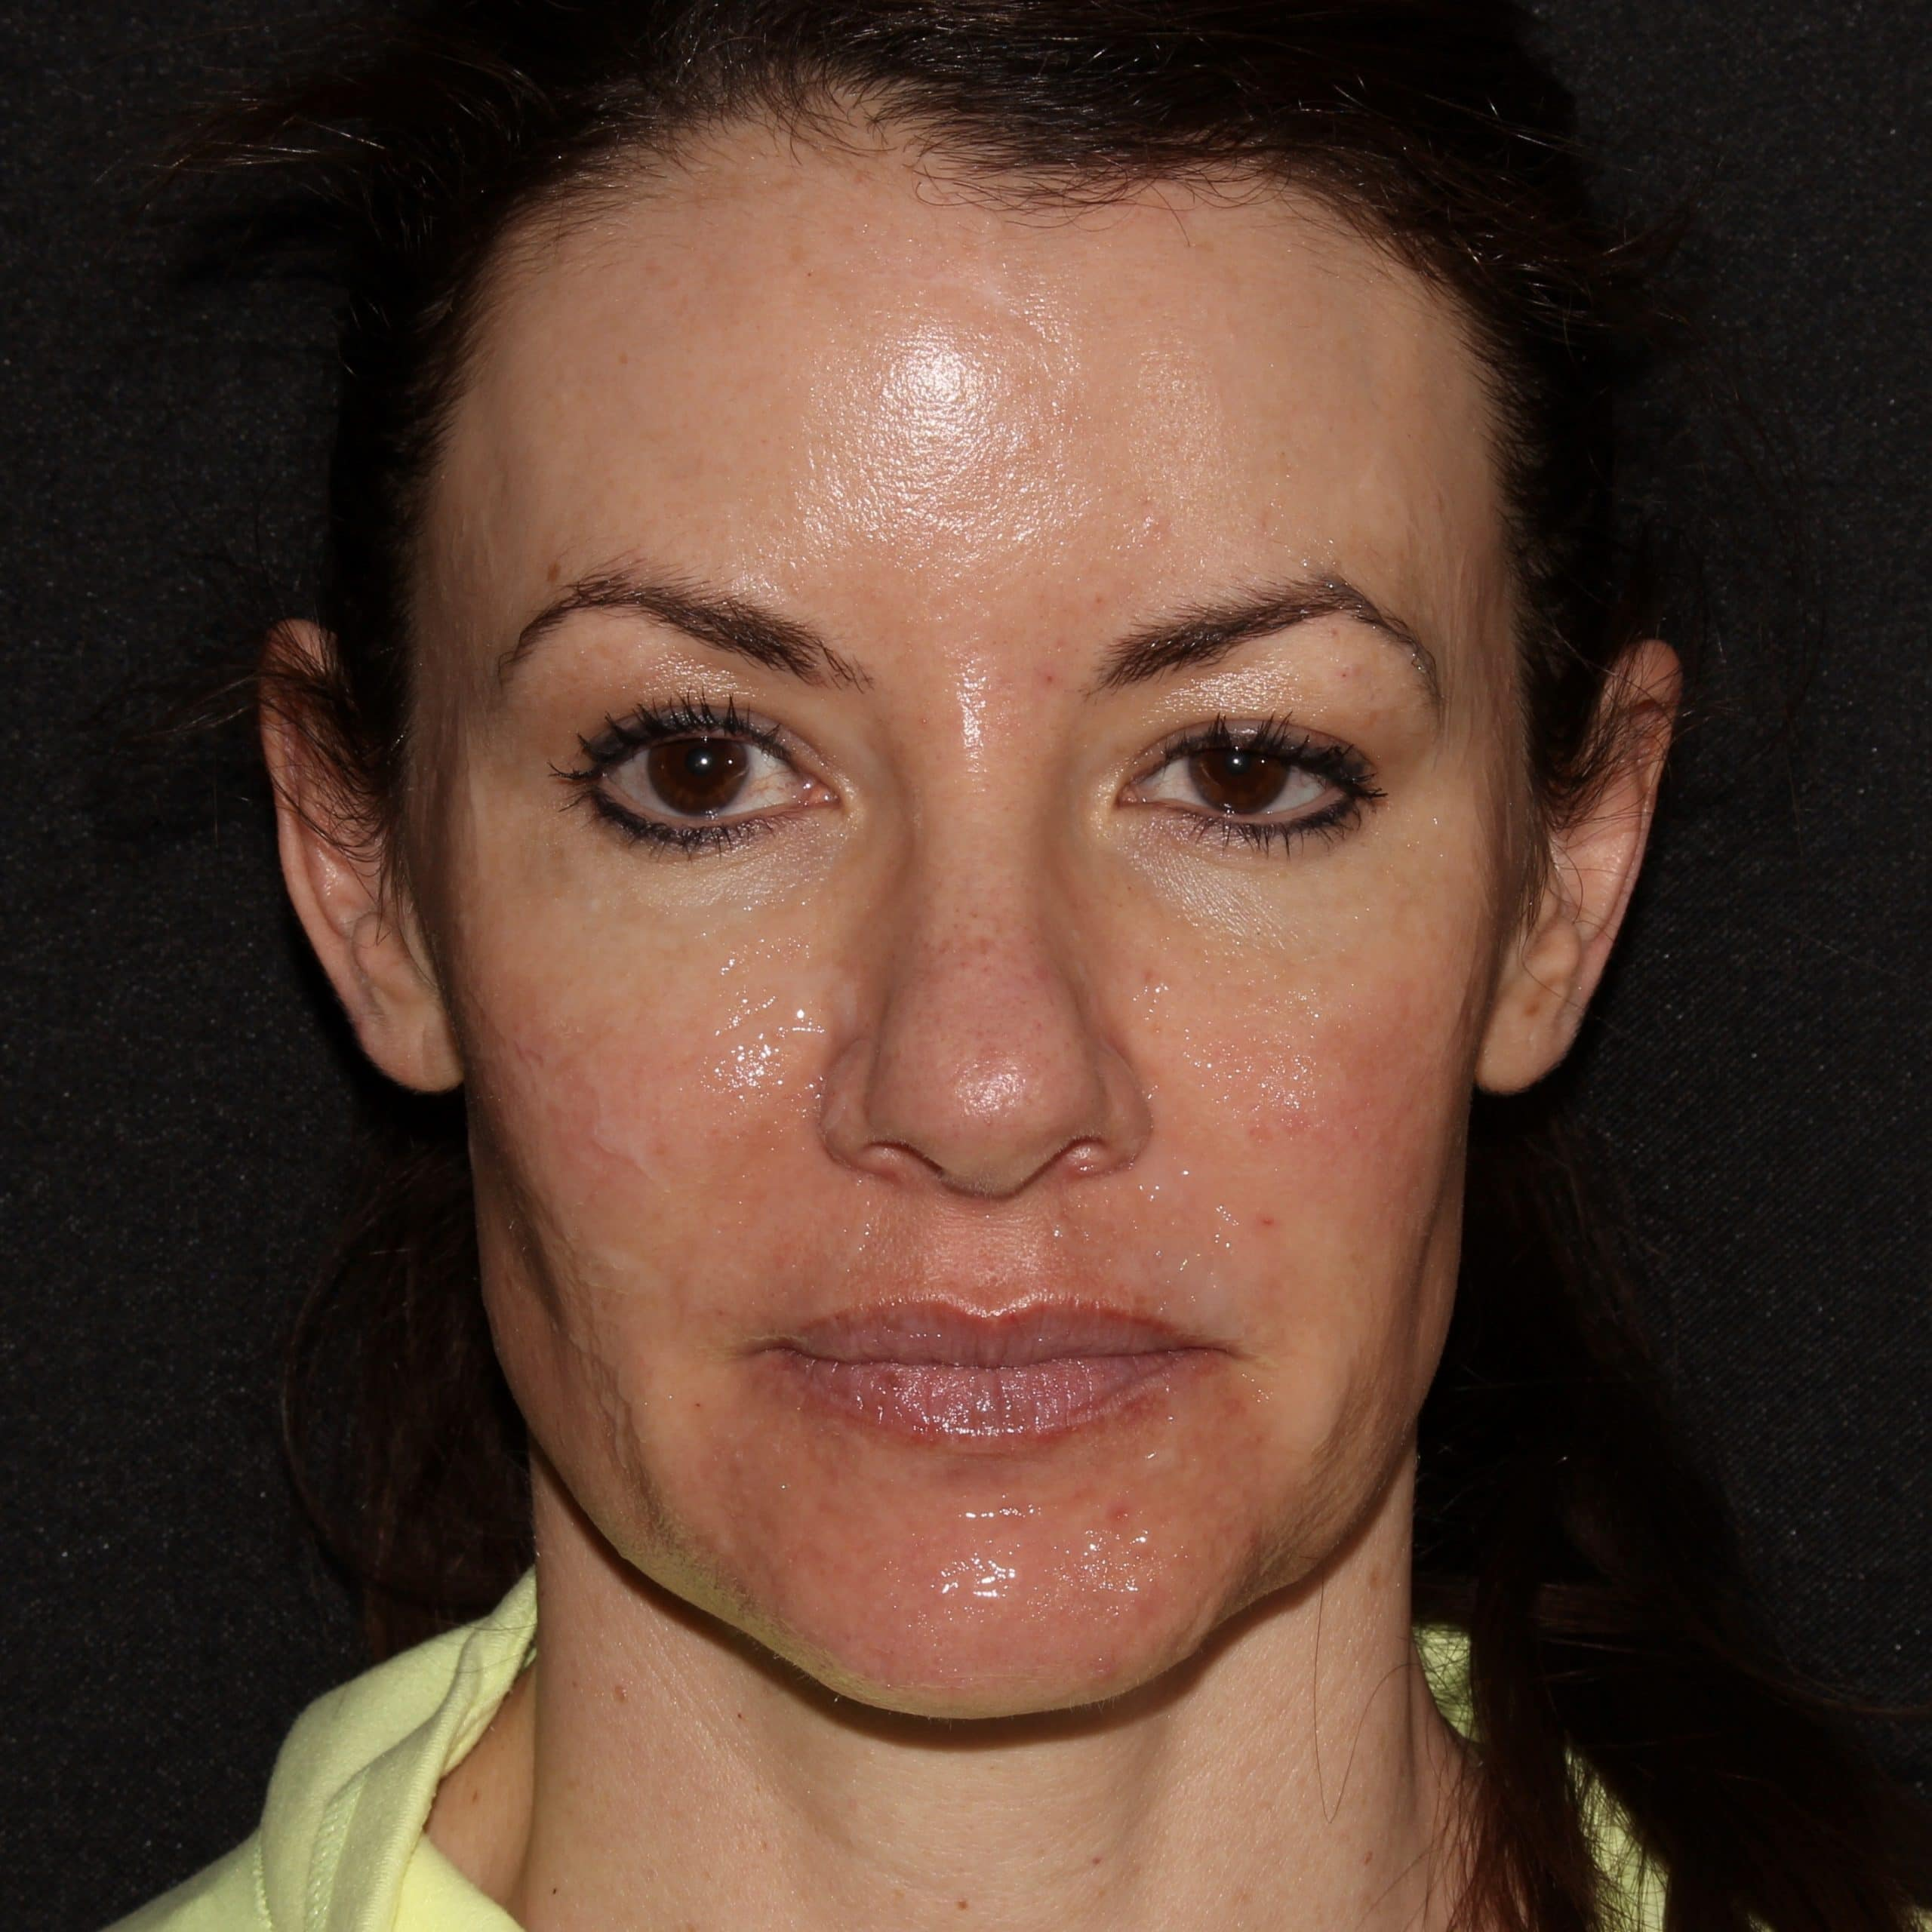 KC Botox and sculptra scaled 1